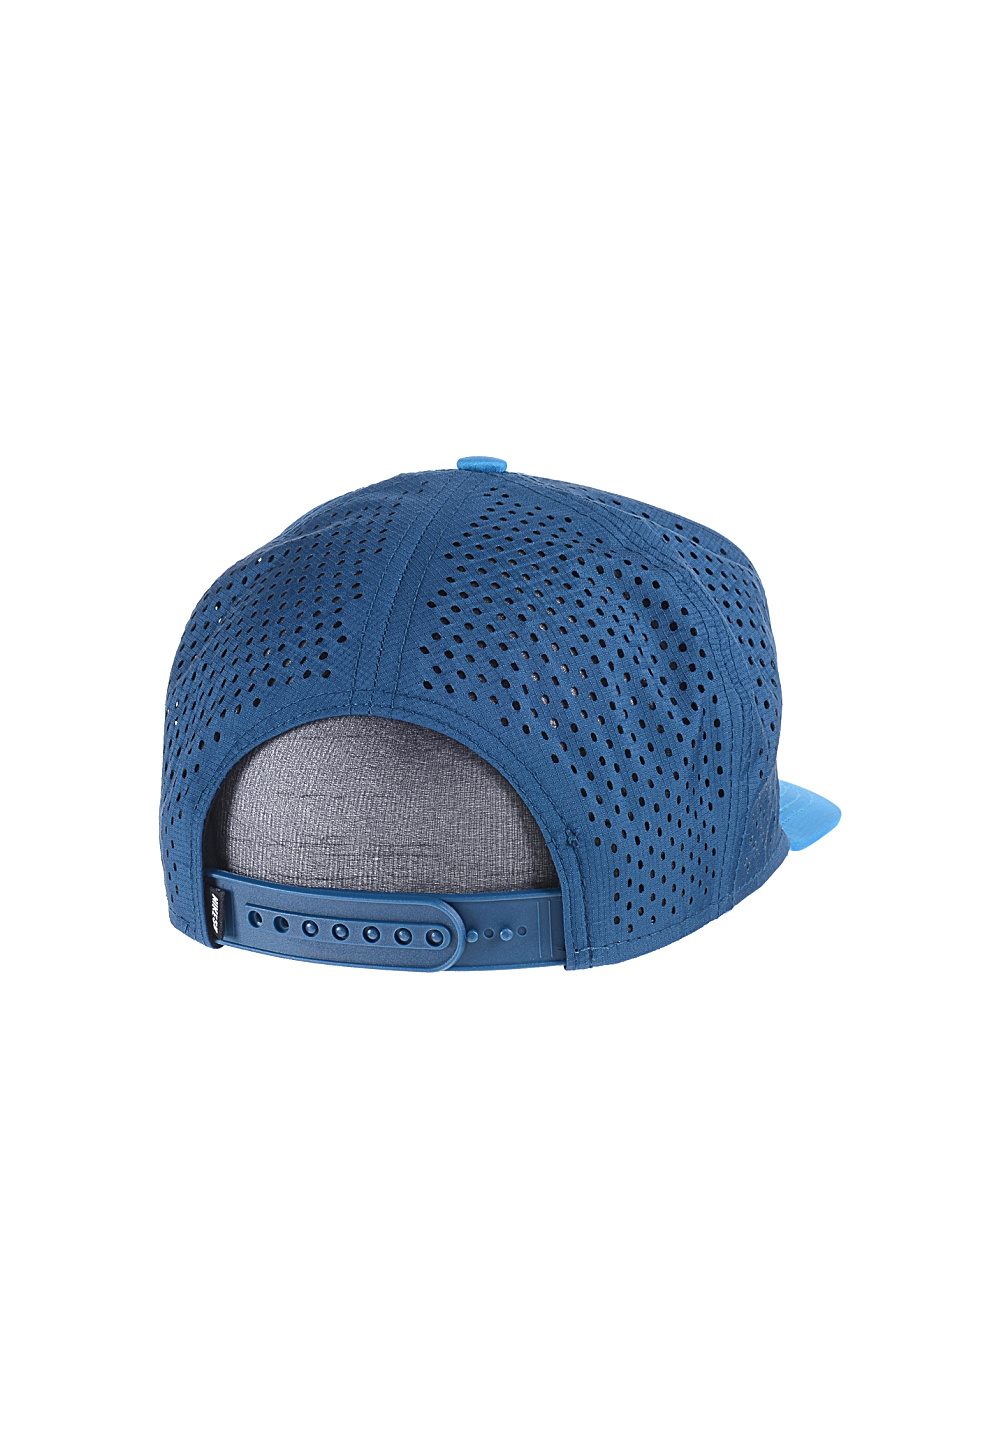 05a08042afd Previous. Next. This product is currently out of stock. NIKE SB. Performance  - Trucker Cap ...